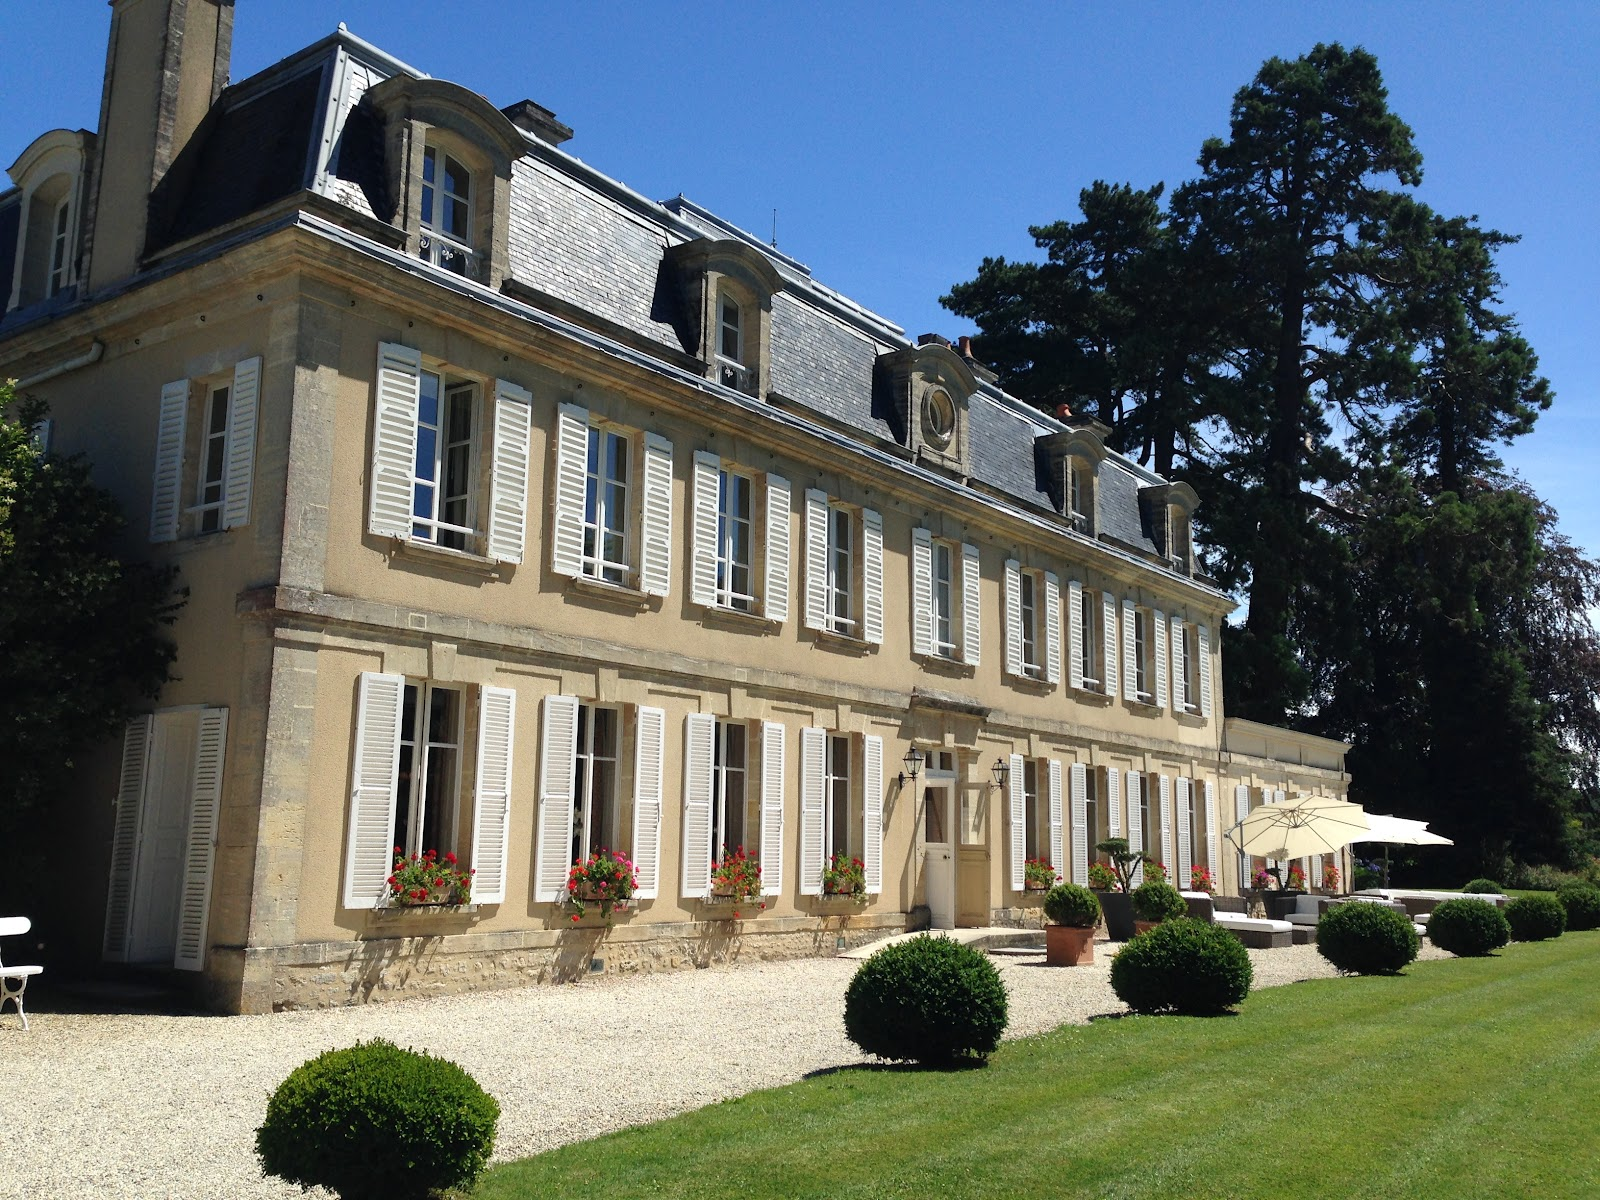 exterior chateau la cheneviere hotel located in a medieval castle. neatly cut lawn in foreground and trees in background, photographed on a sunny summer day in france